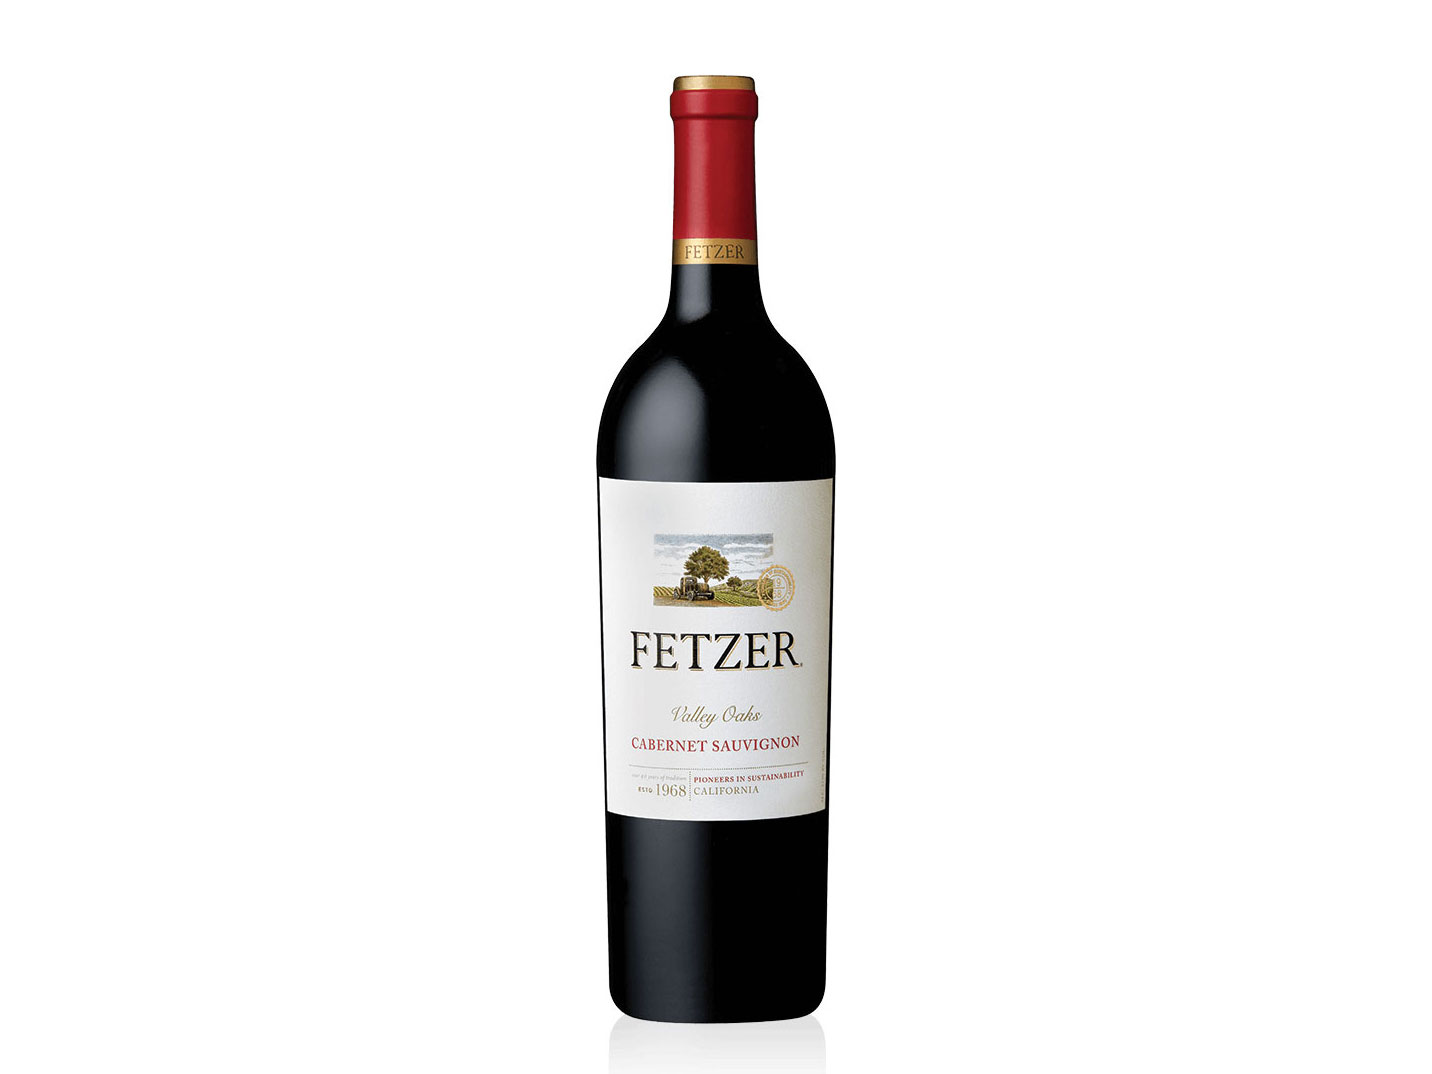 2016 Fetzer Valley Oak Cabernet Sauvignon California